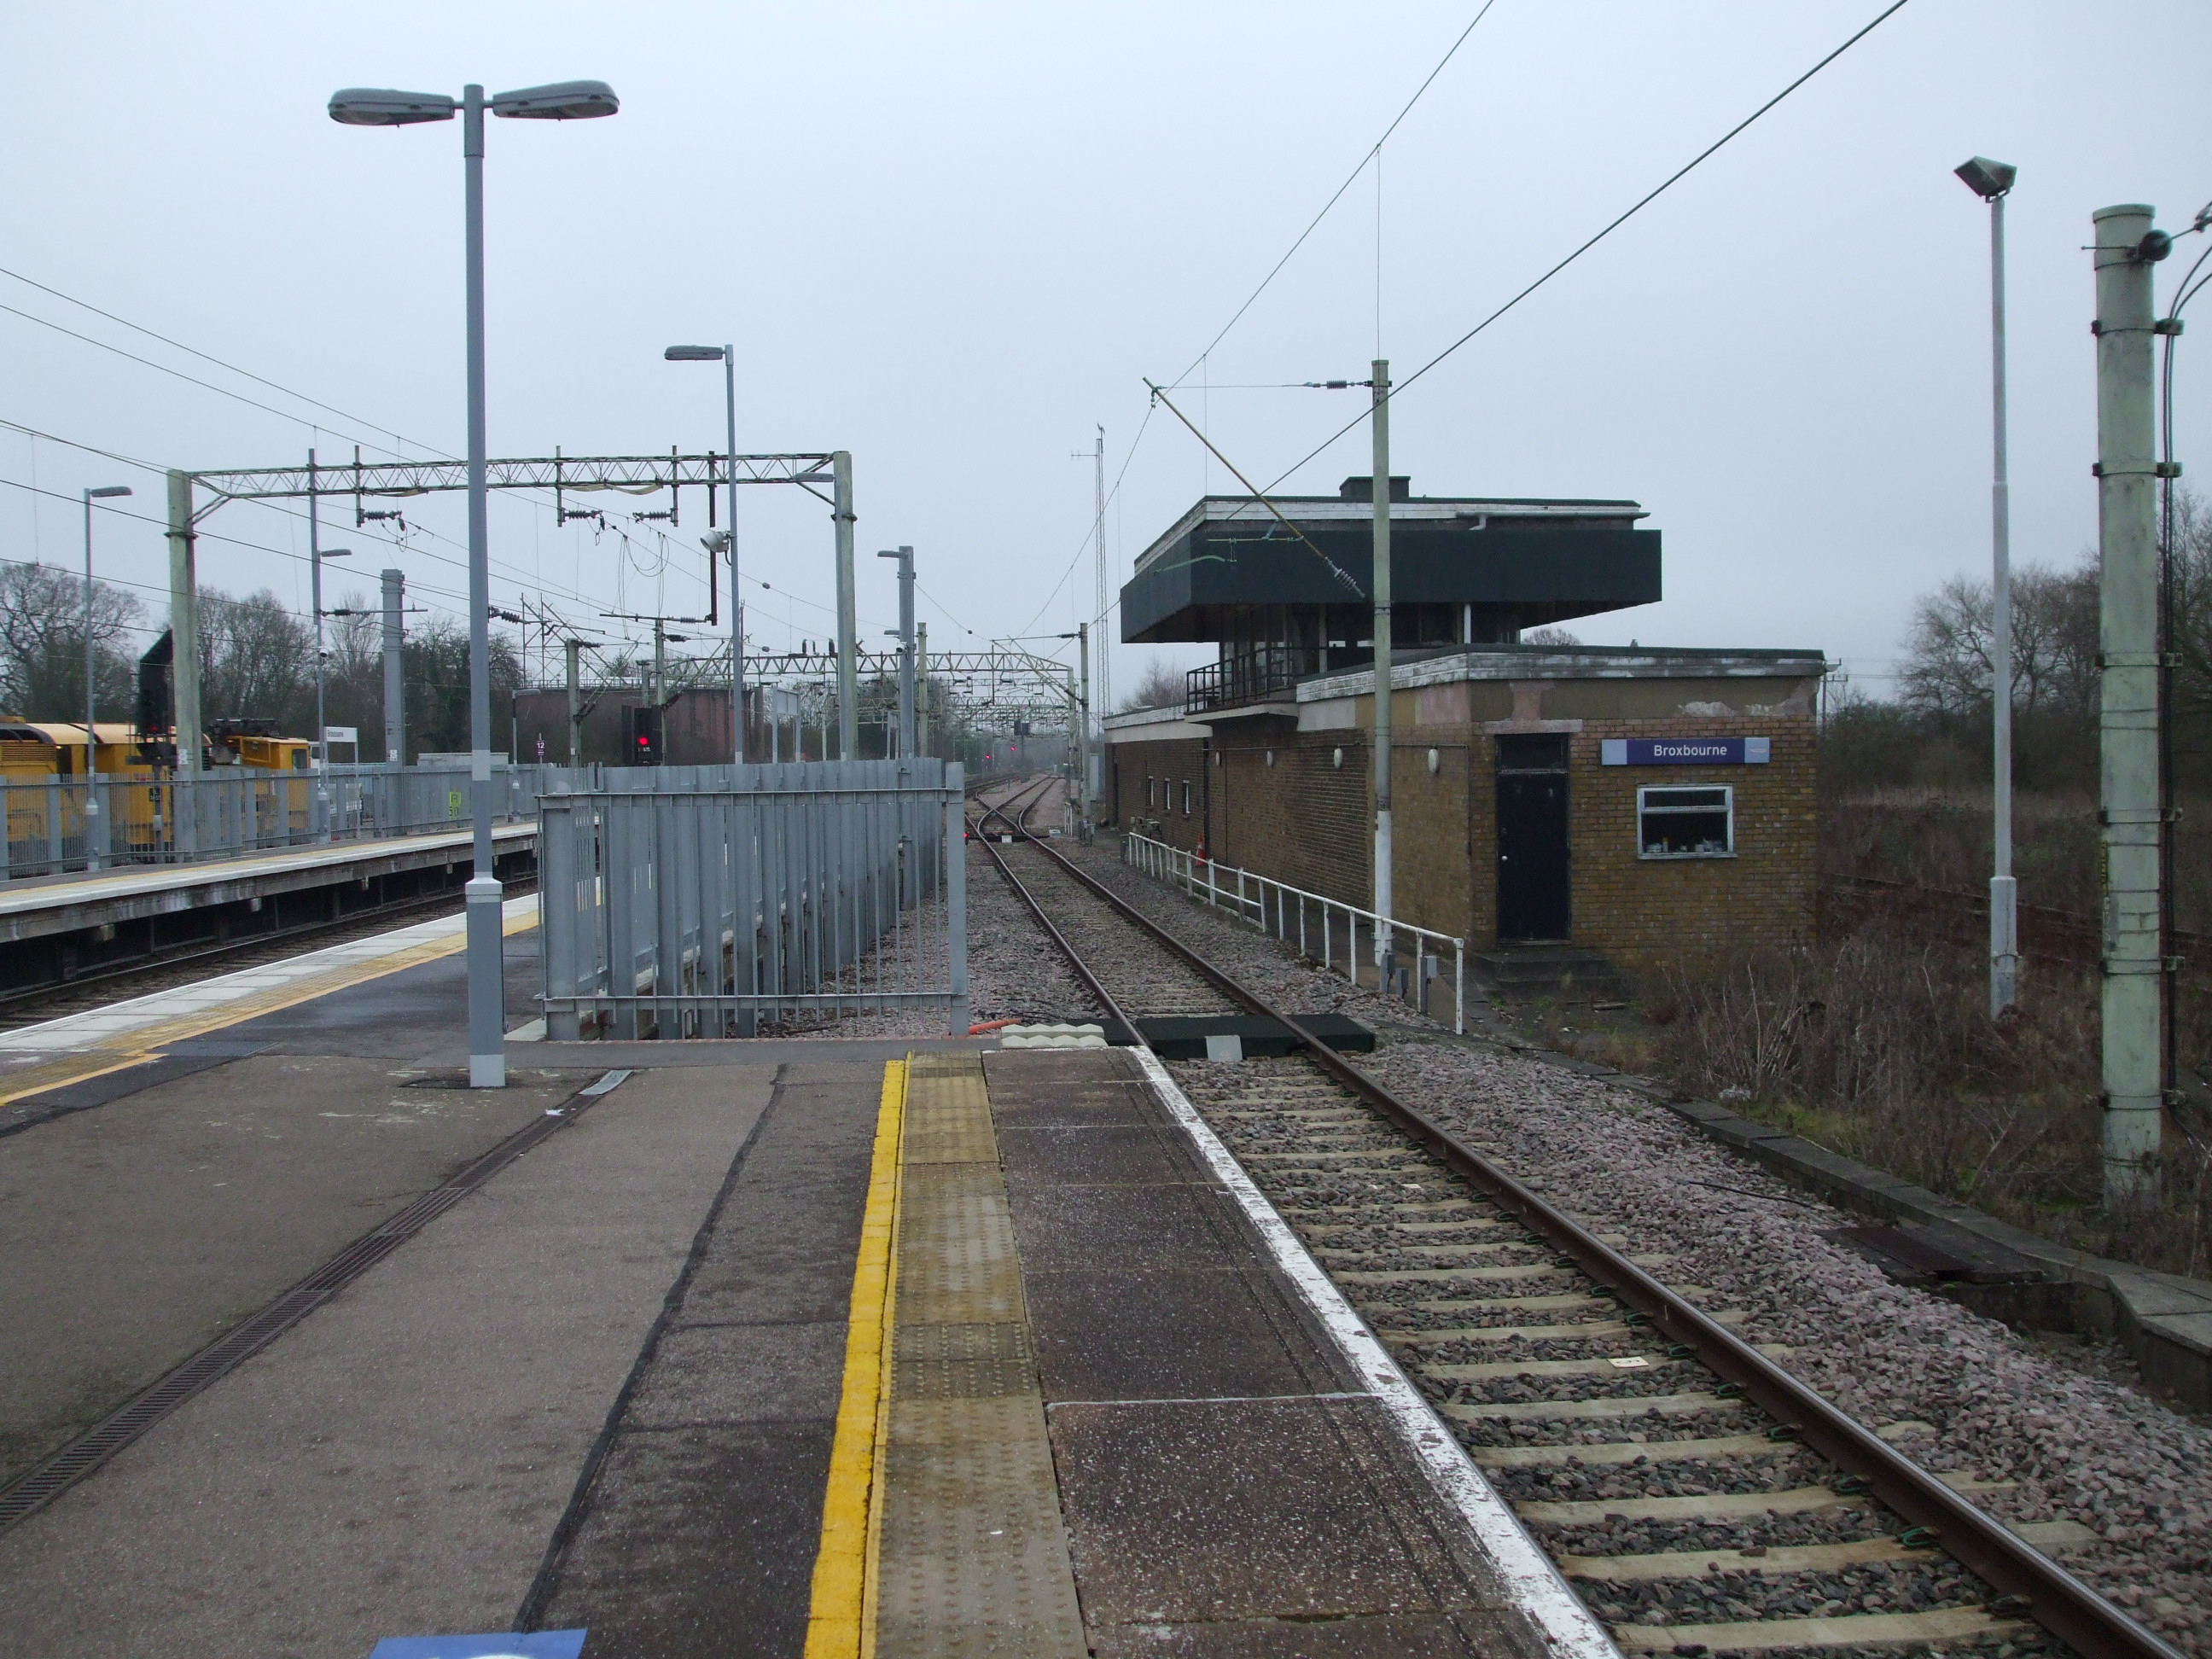 File:Broxbourne station slow southbound look north3.JPG ...